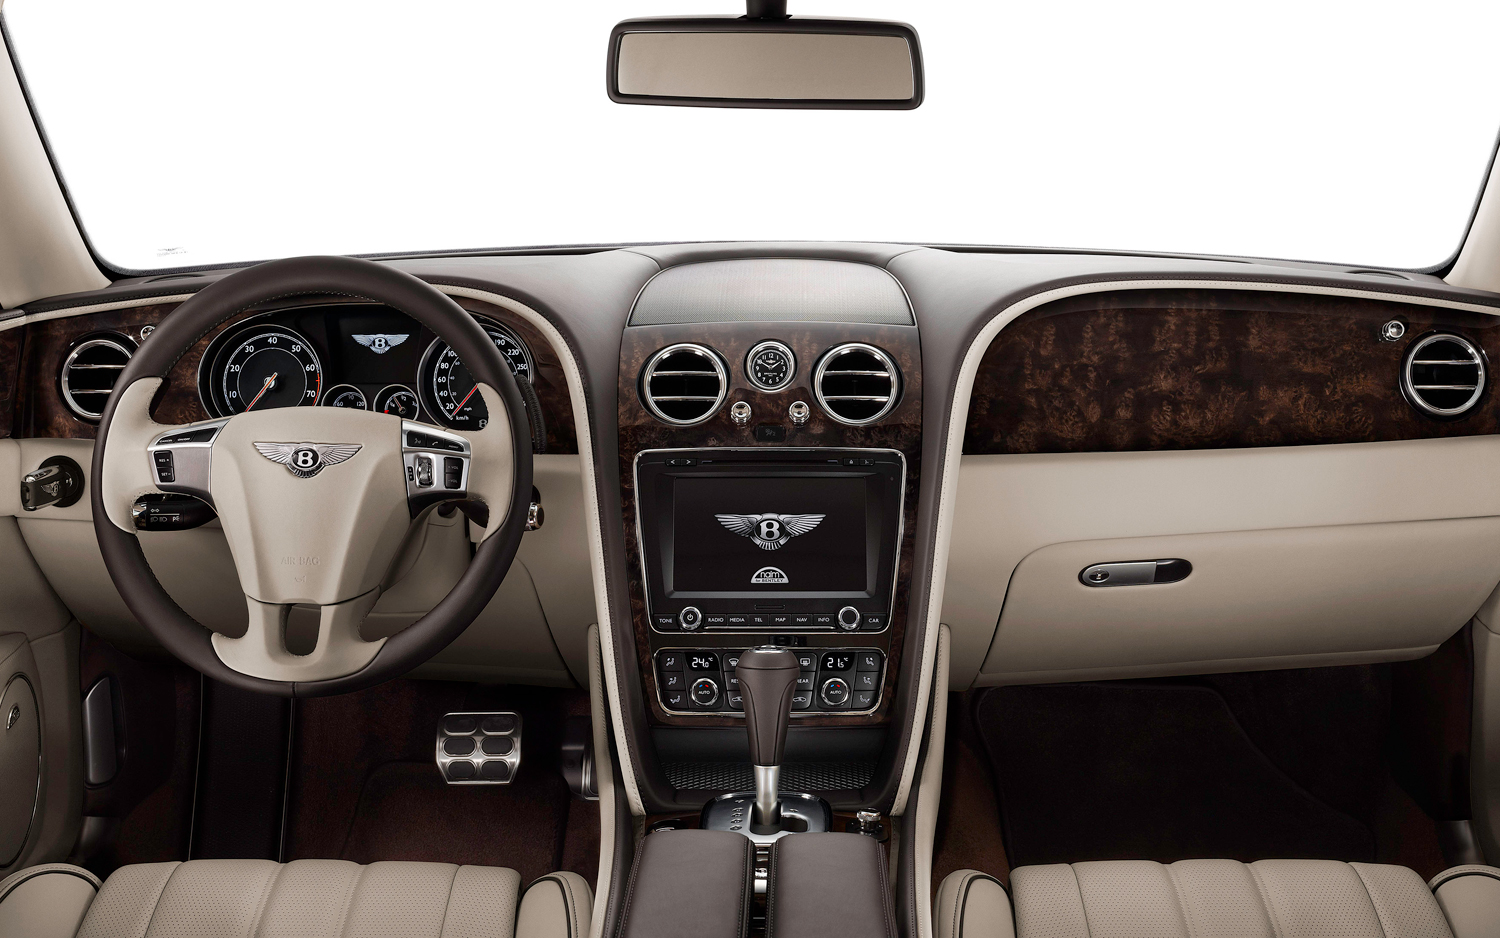 Bentley 2014 hit the market with the model of Bentley Continental GT V8 S #3